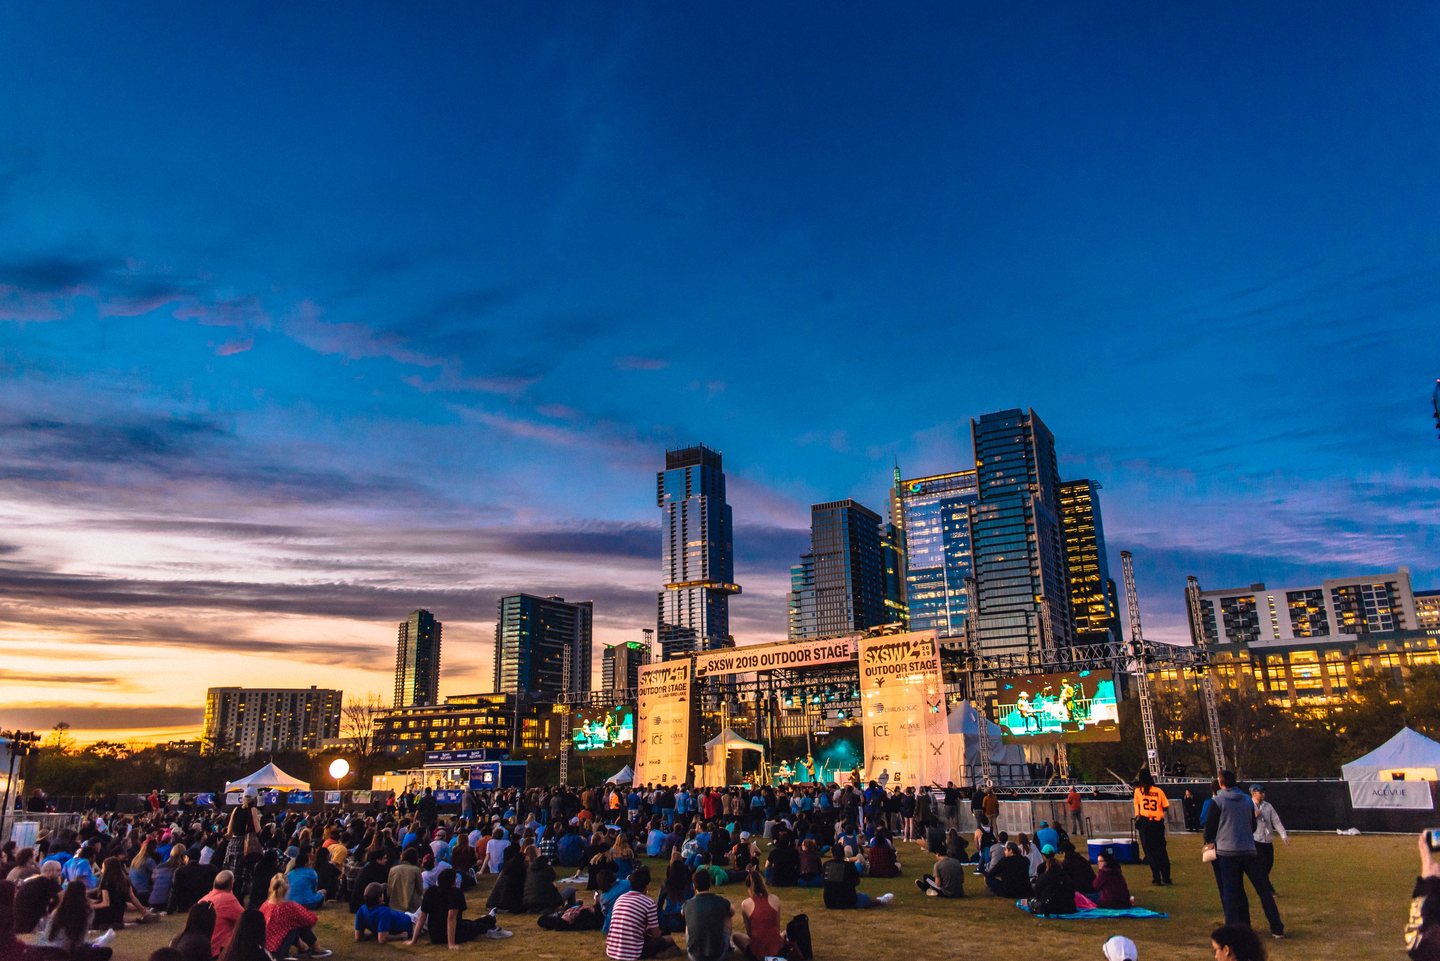 View of the crowd at the SXSW Outdoor Stage at Lady Bird Lake presented by 101X.